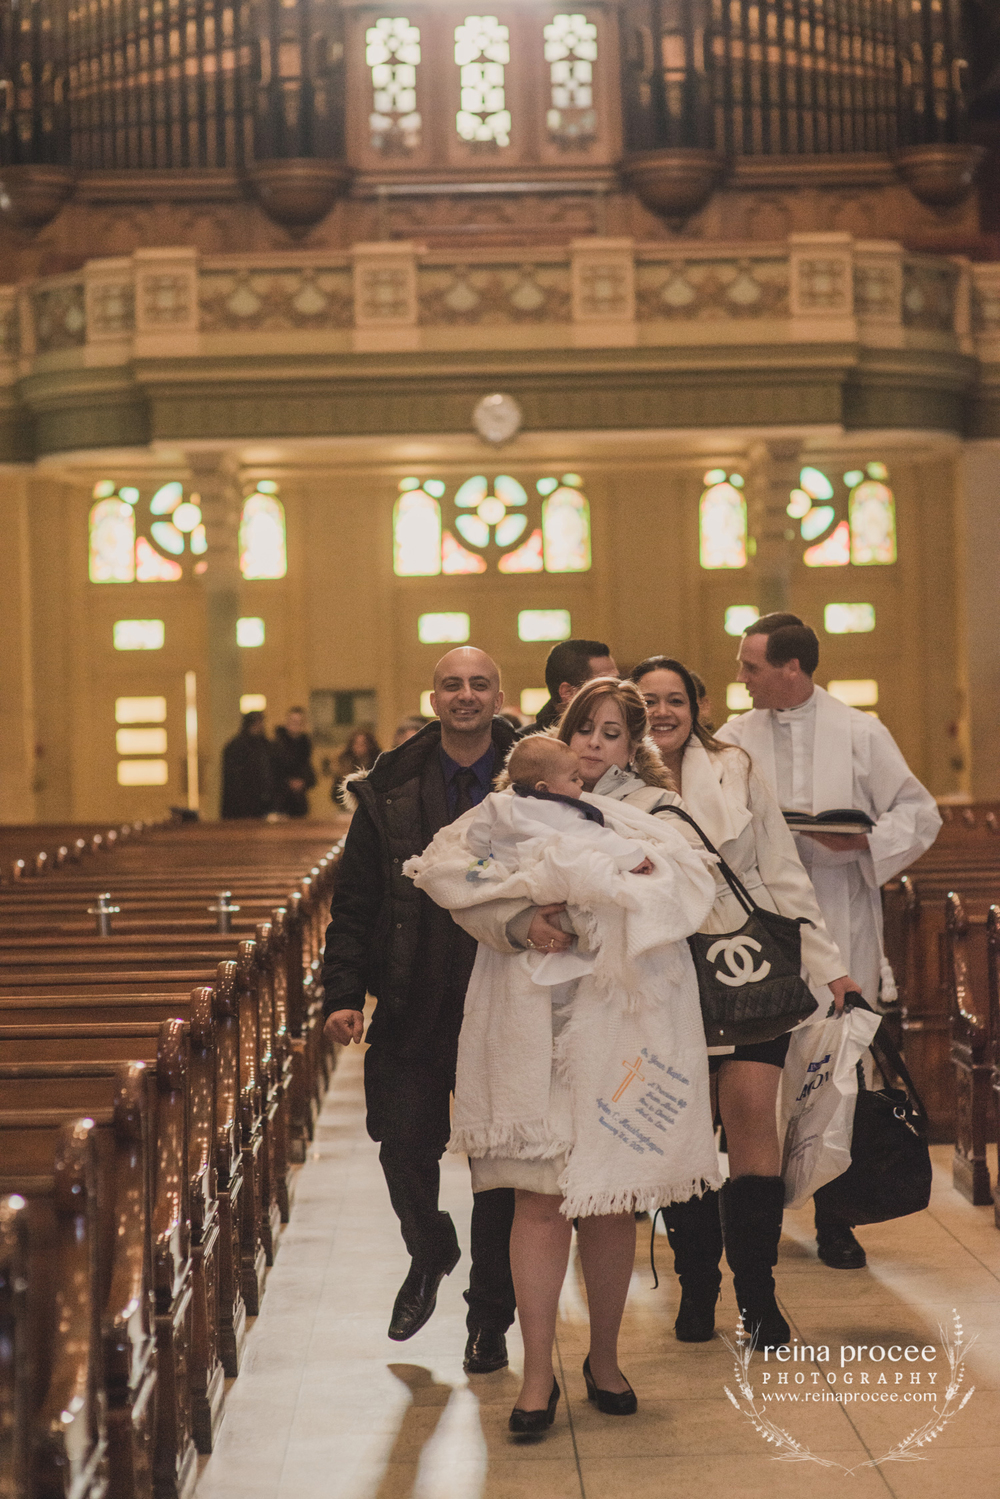 027-baptism-photographer-montreal-family-best-photos-portraits.jpg